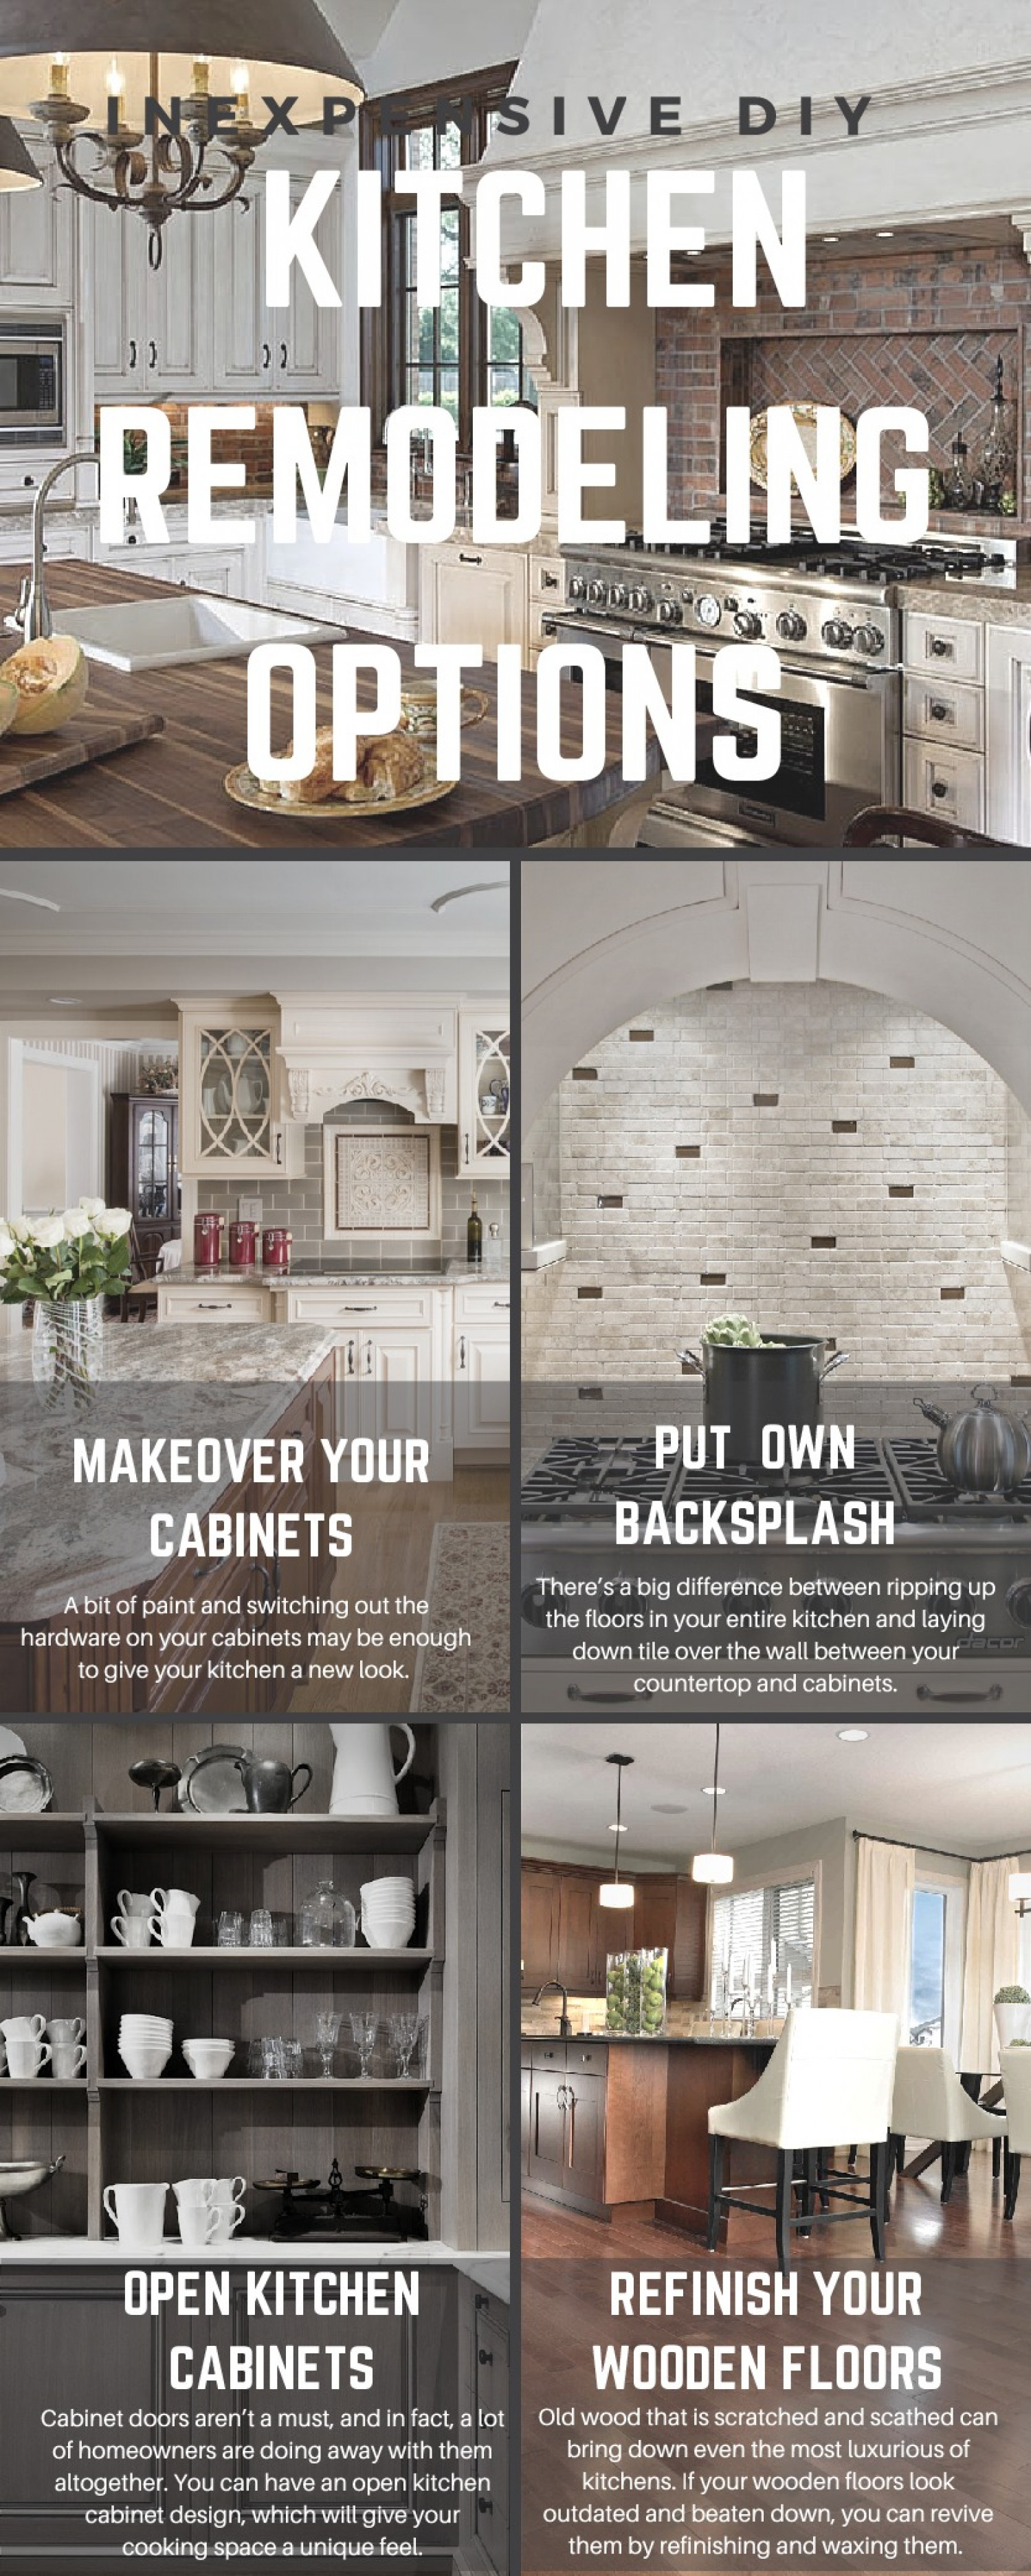 Inexpensive DIY Kitchen Remodeling Options | Visual.ly